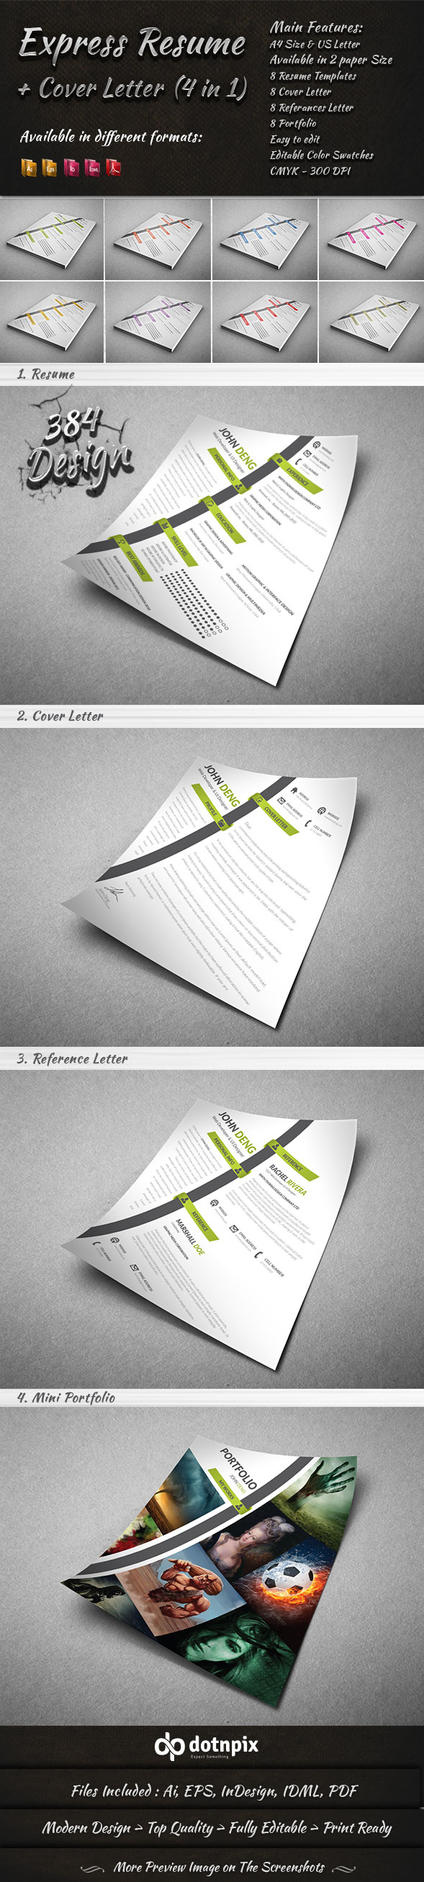 Express Resume - Cover Letter (4 in 1) by dotnpix